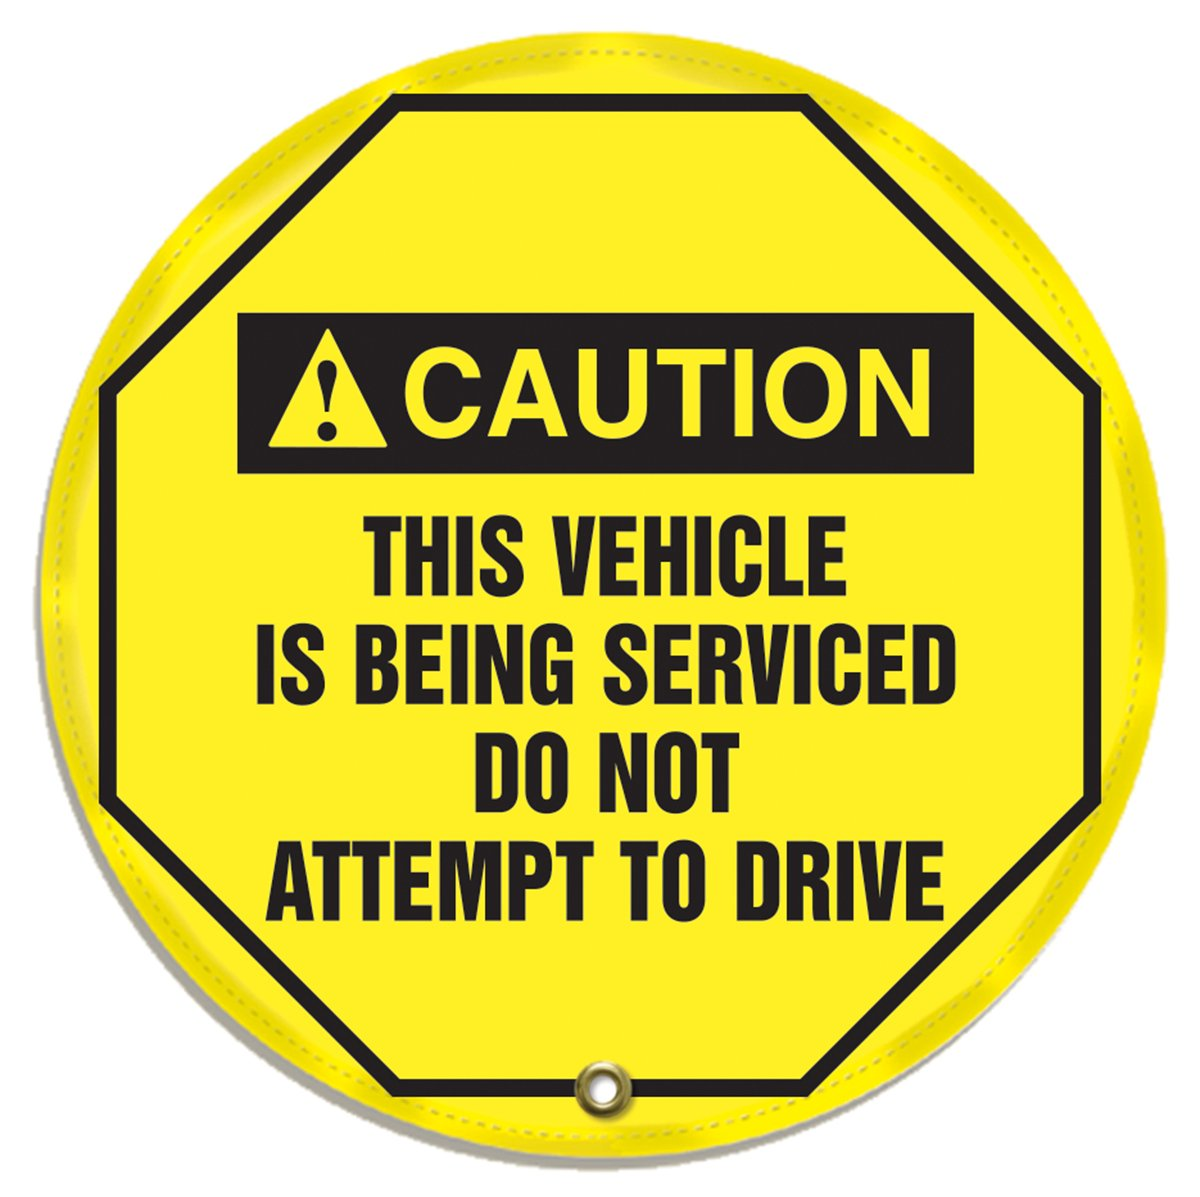 Accuform KDD727 STOPOUT Vinyl Steering Wheel Message Cover, ANSI-Style Legend''CAUTION THIS VEHICLE IS BEING SERVICED DO NOT ATTEMPT TO DRIVE'', 20'' Diameter, Black on Yellow